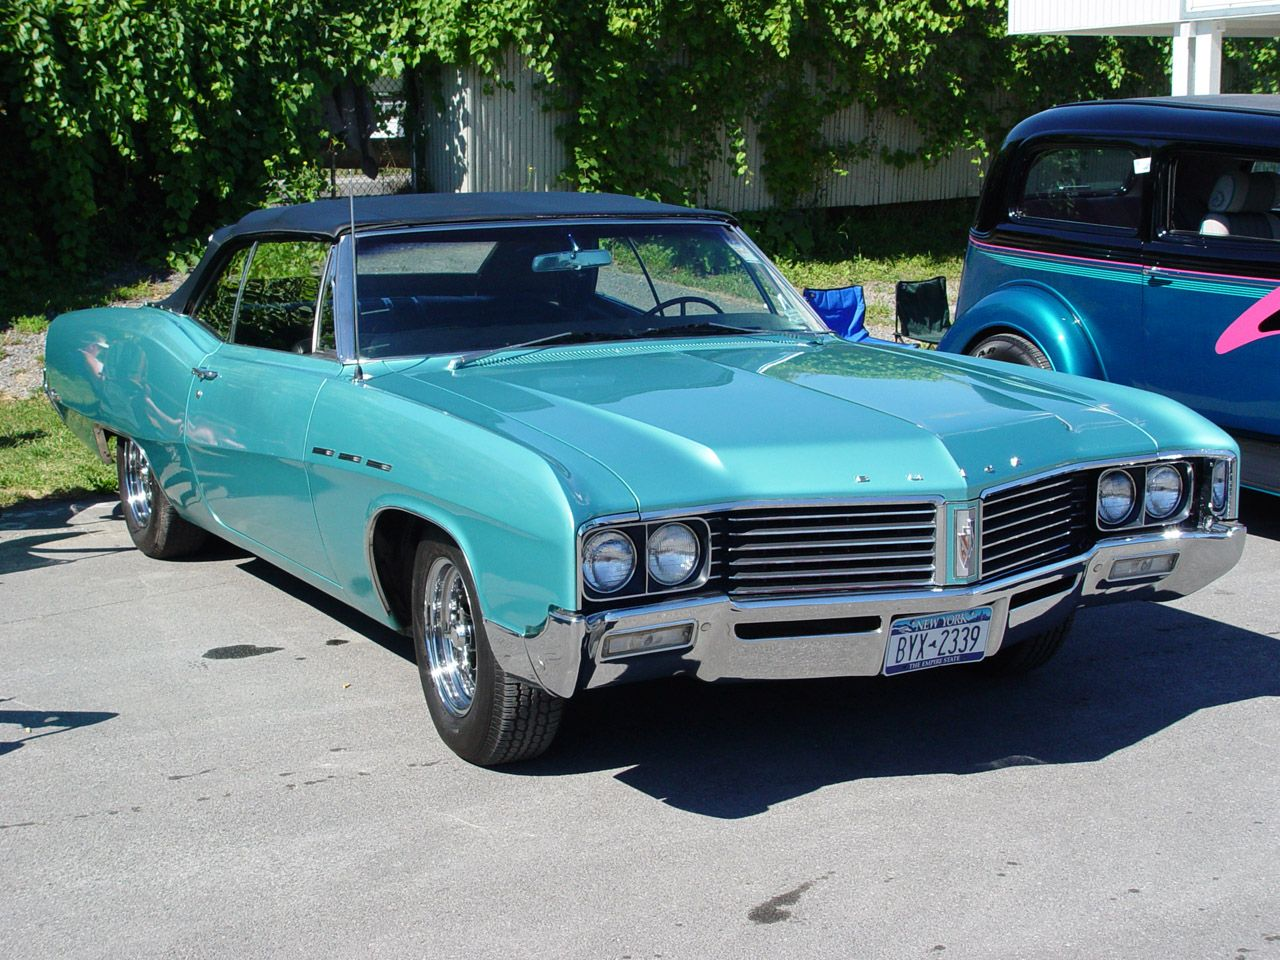 1967 buick lesabre my very first car a hand me down from. Black Bedroom Furniture Sets. Home Design Ideas